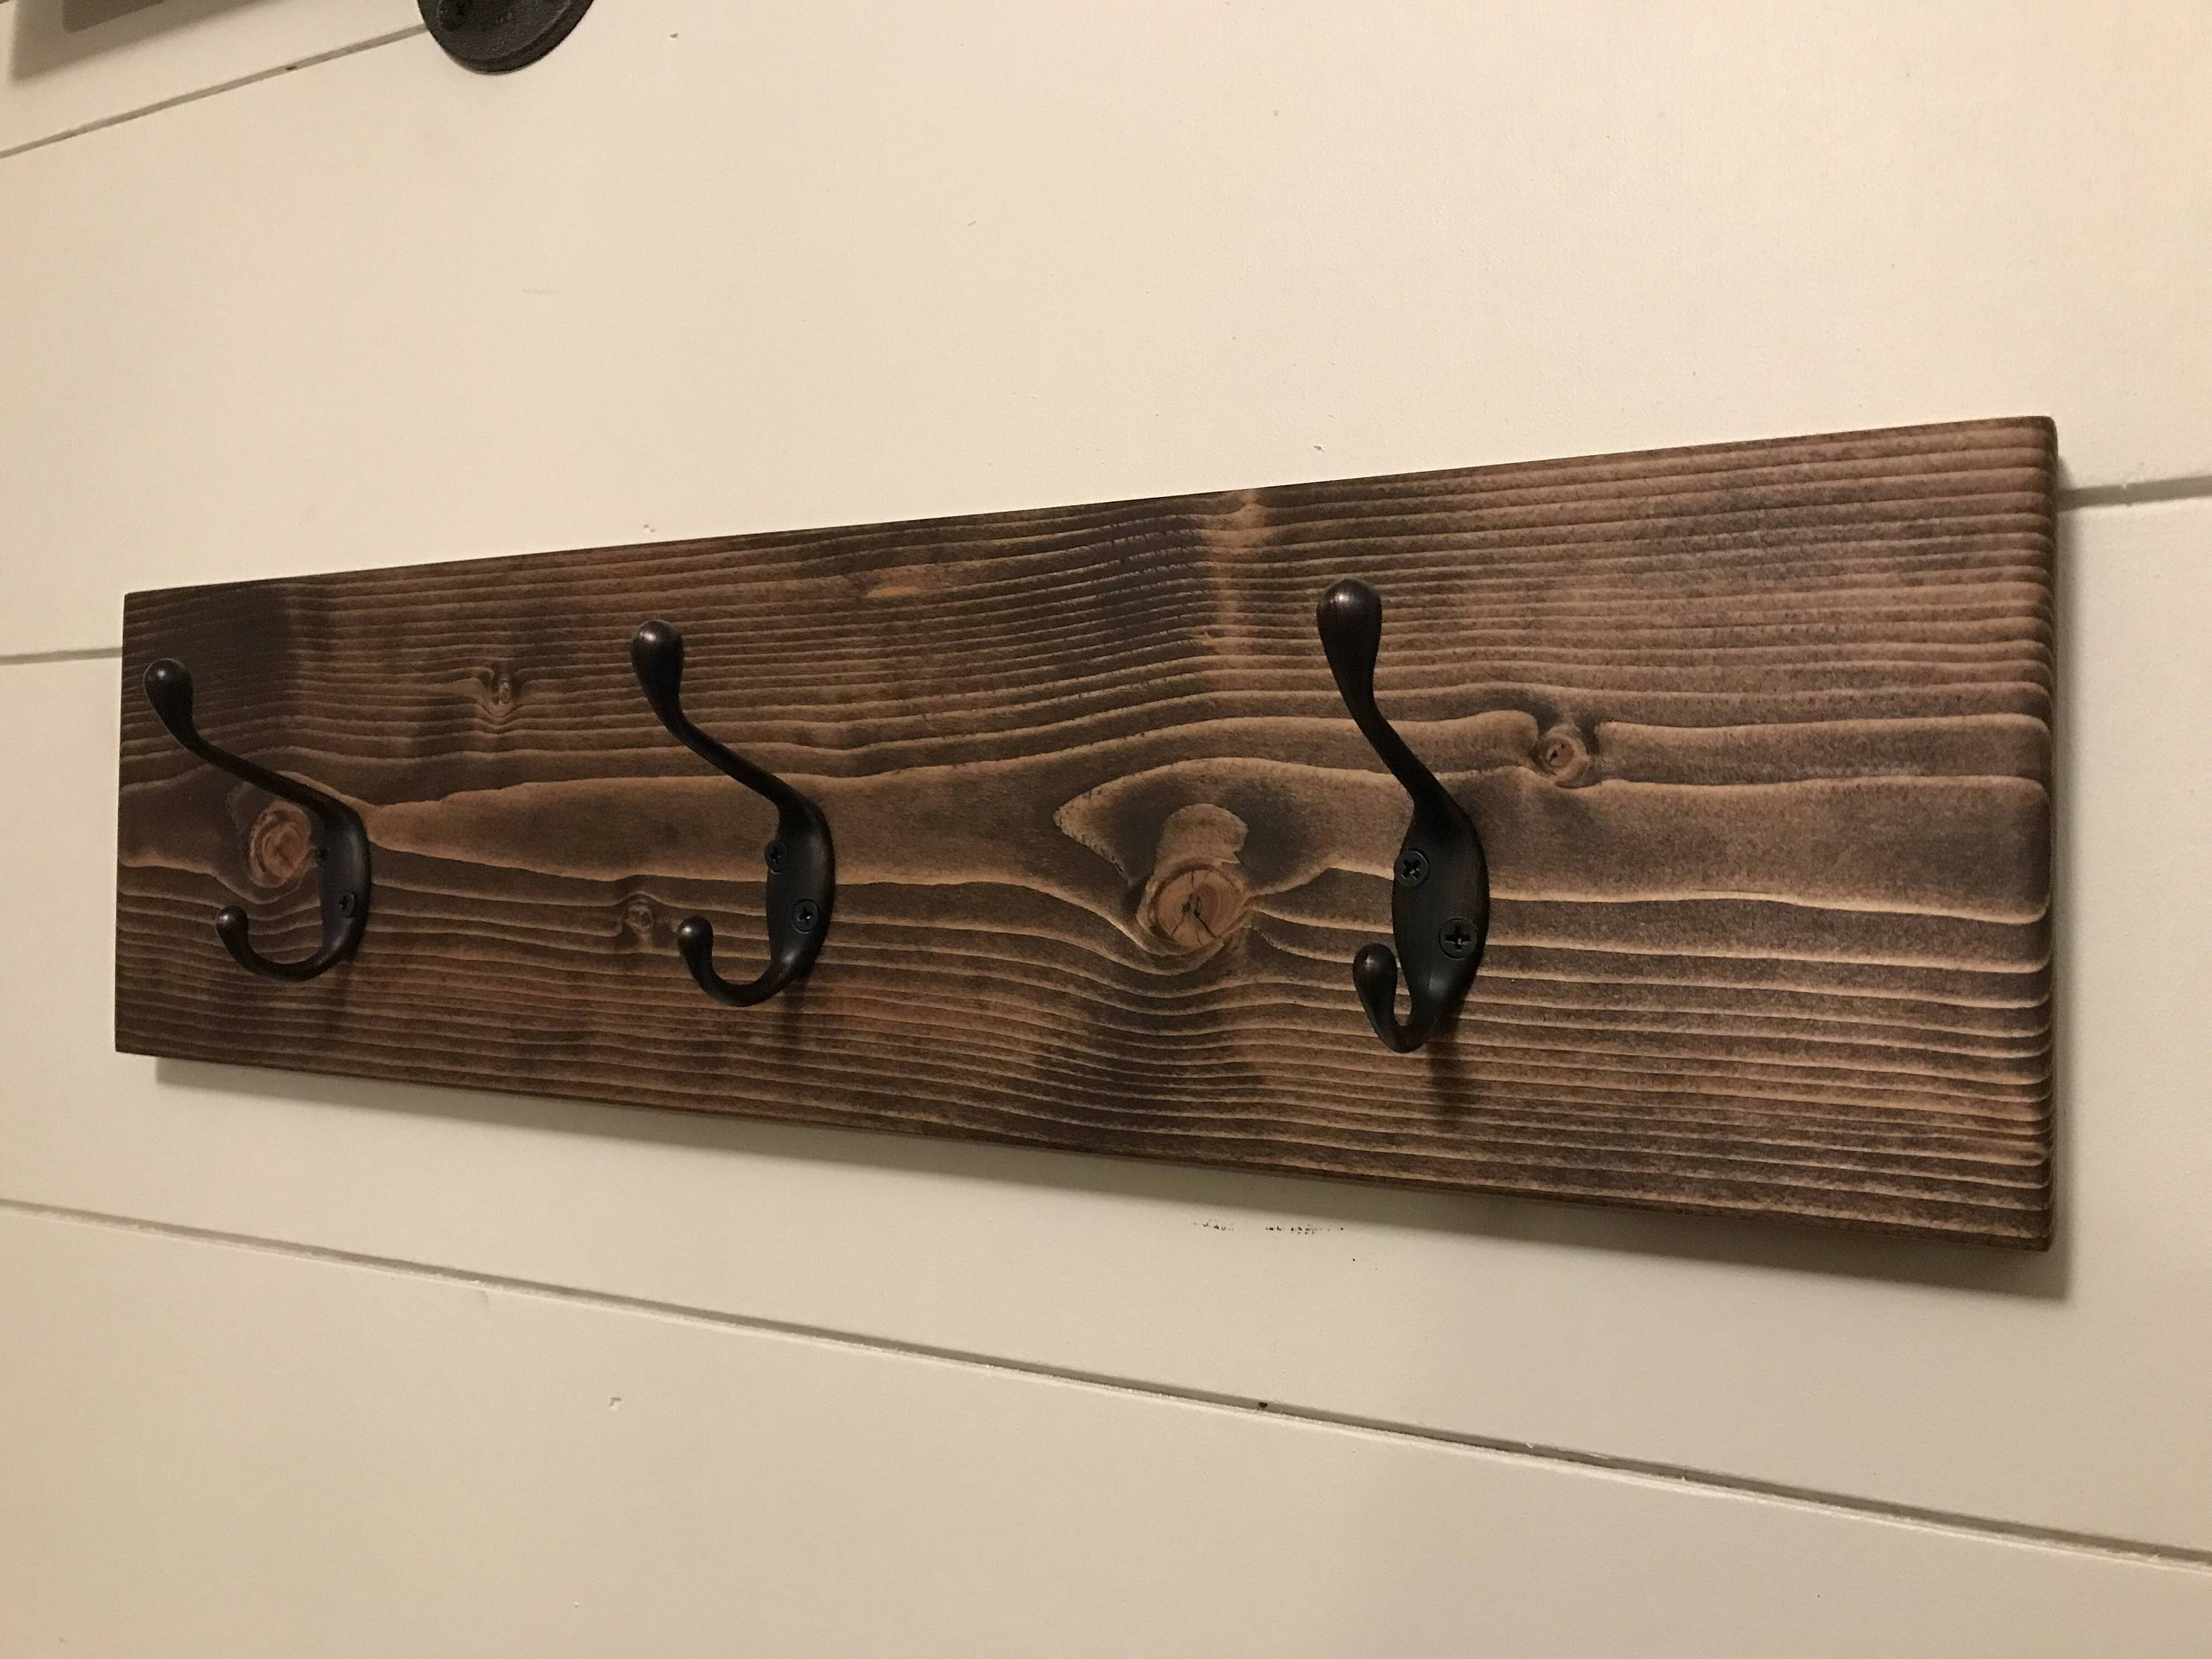 Rustic Wooden Coat Rack / Wood Wall Hooks / Entryway Storage, Wall Within Newest Wall Art Coat Hooks (View 18 of 20)